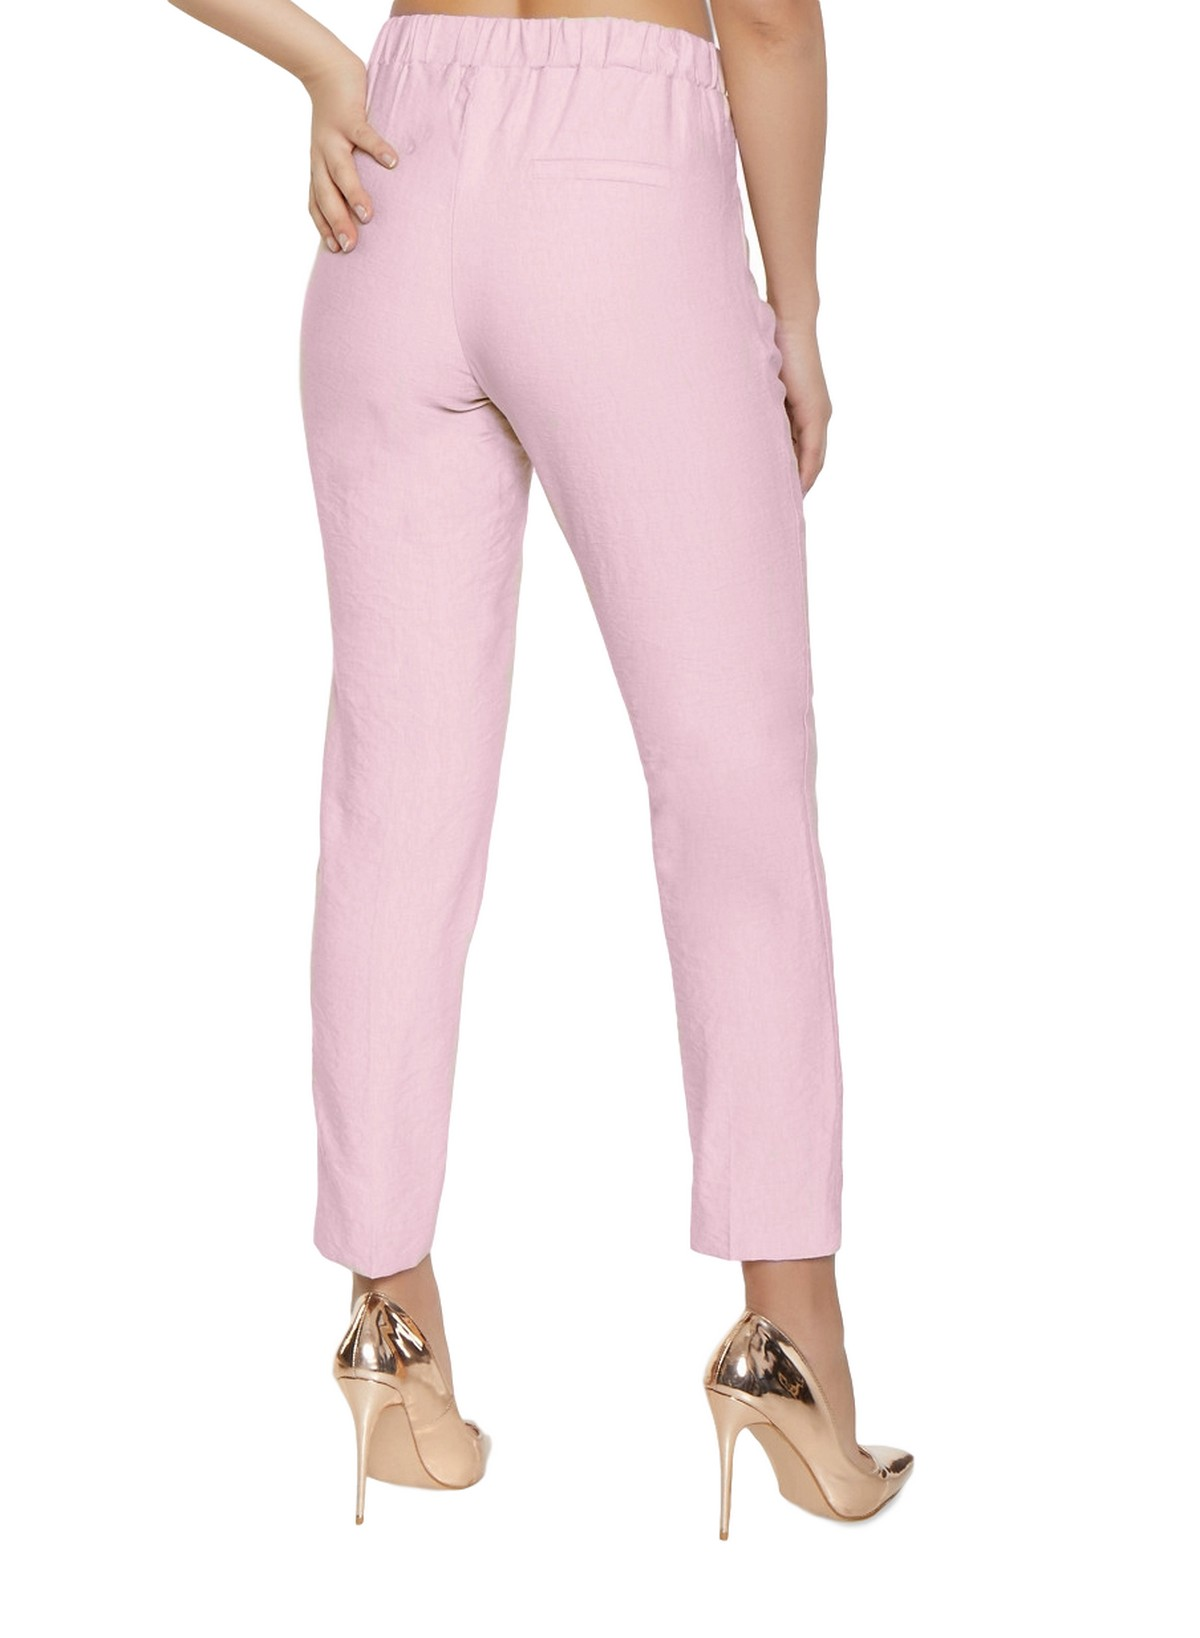 Slim Fit Cigarette Trousers in Baby Pink